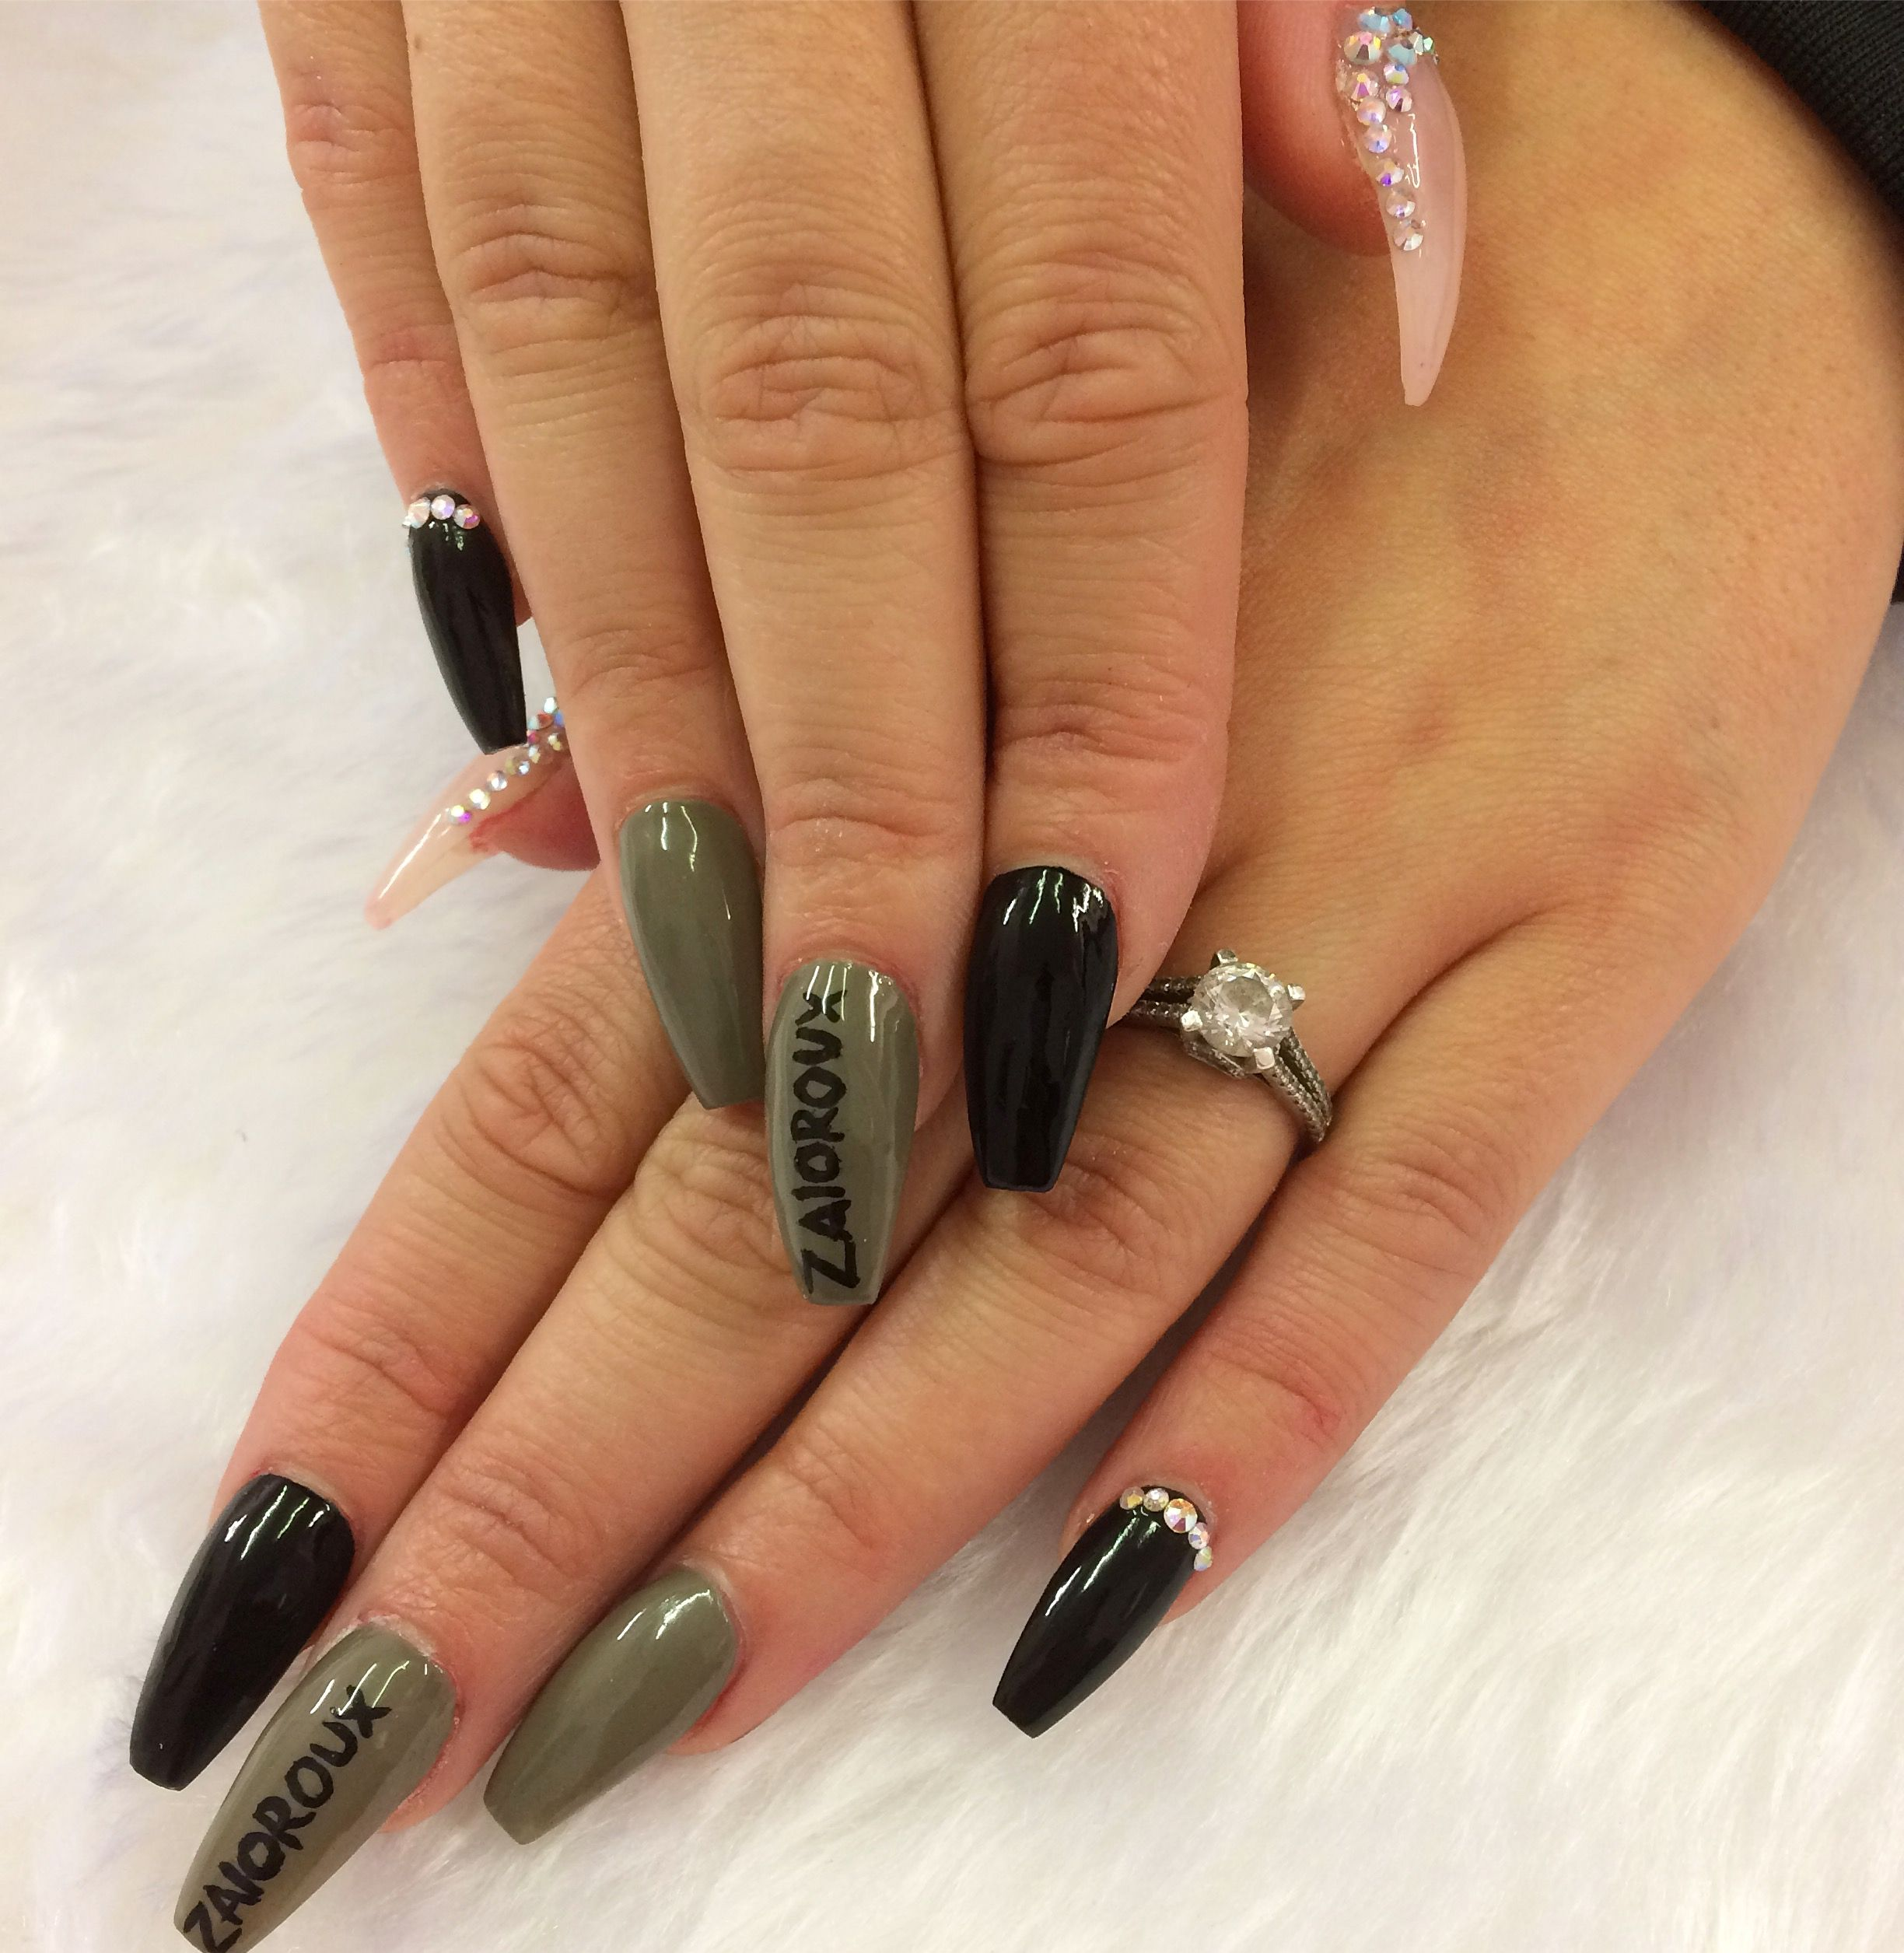 Khaki And Black Coffin Nails With Swarovskis And Hand Painted Lettering Nail Art Nails Us Nails Black Coffin Nails